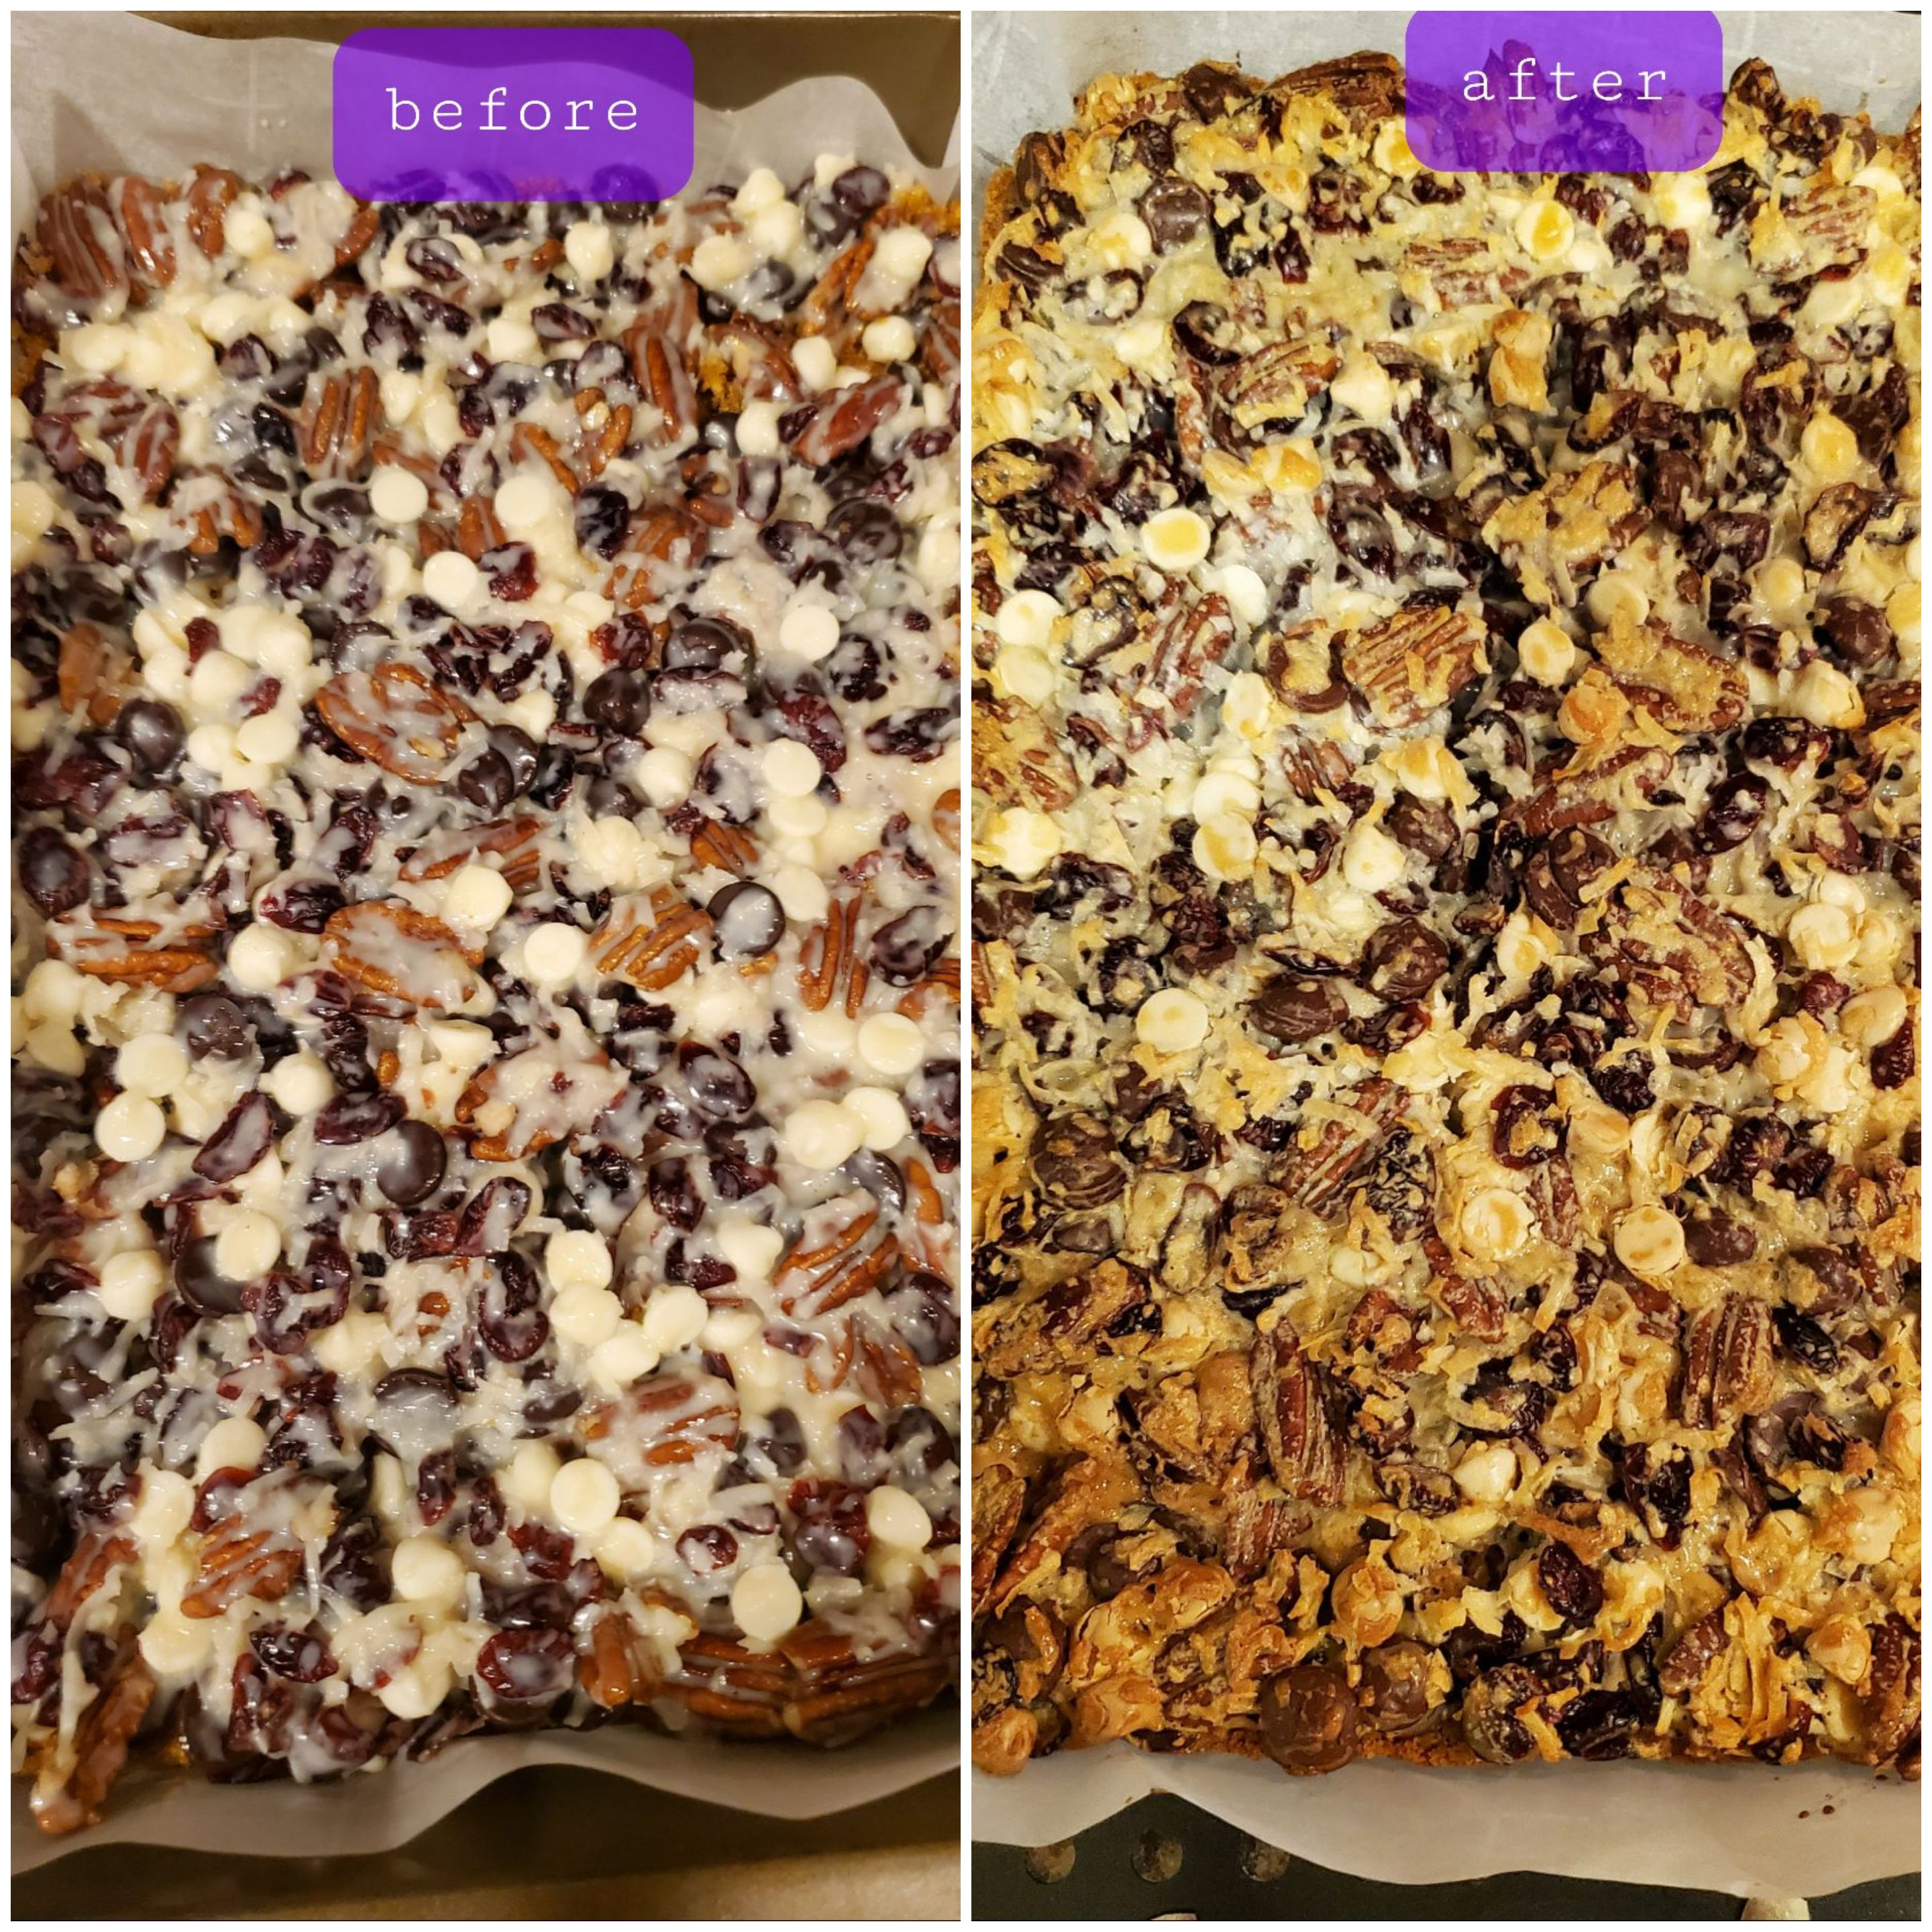 Coconut-Cranberry Bars with Pecans Ms. Kay